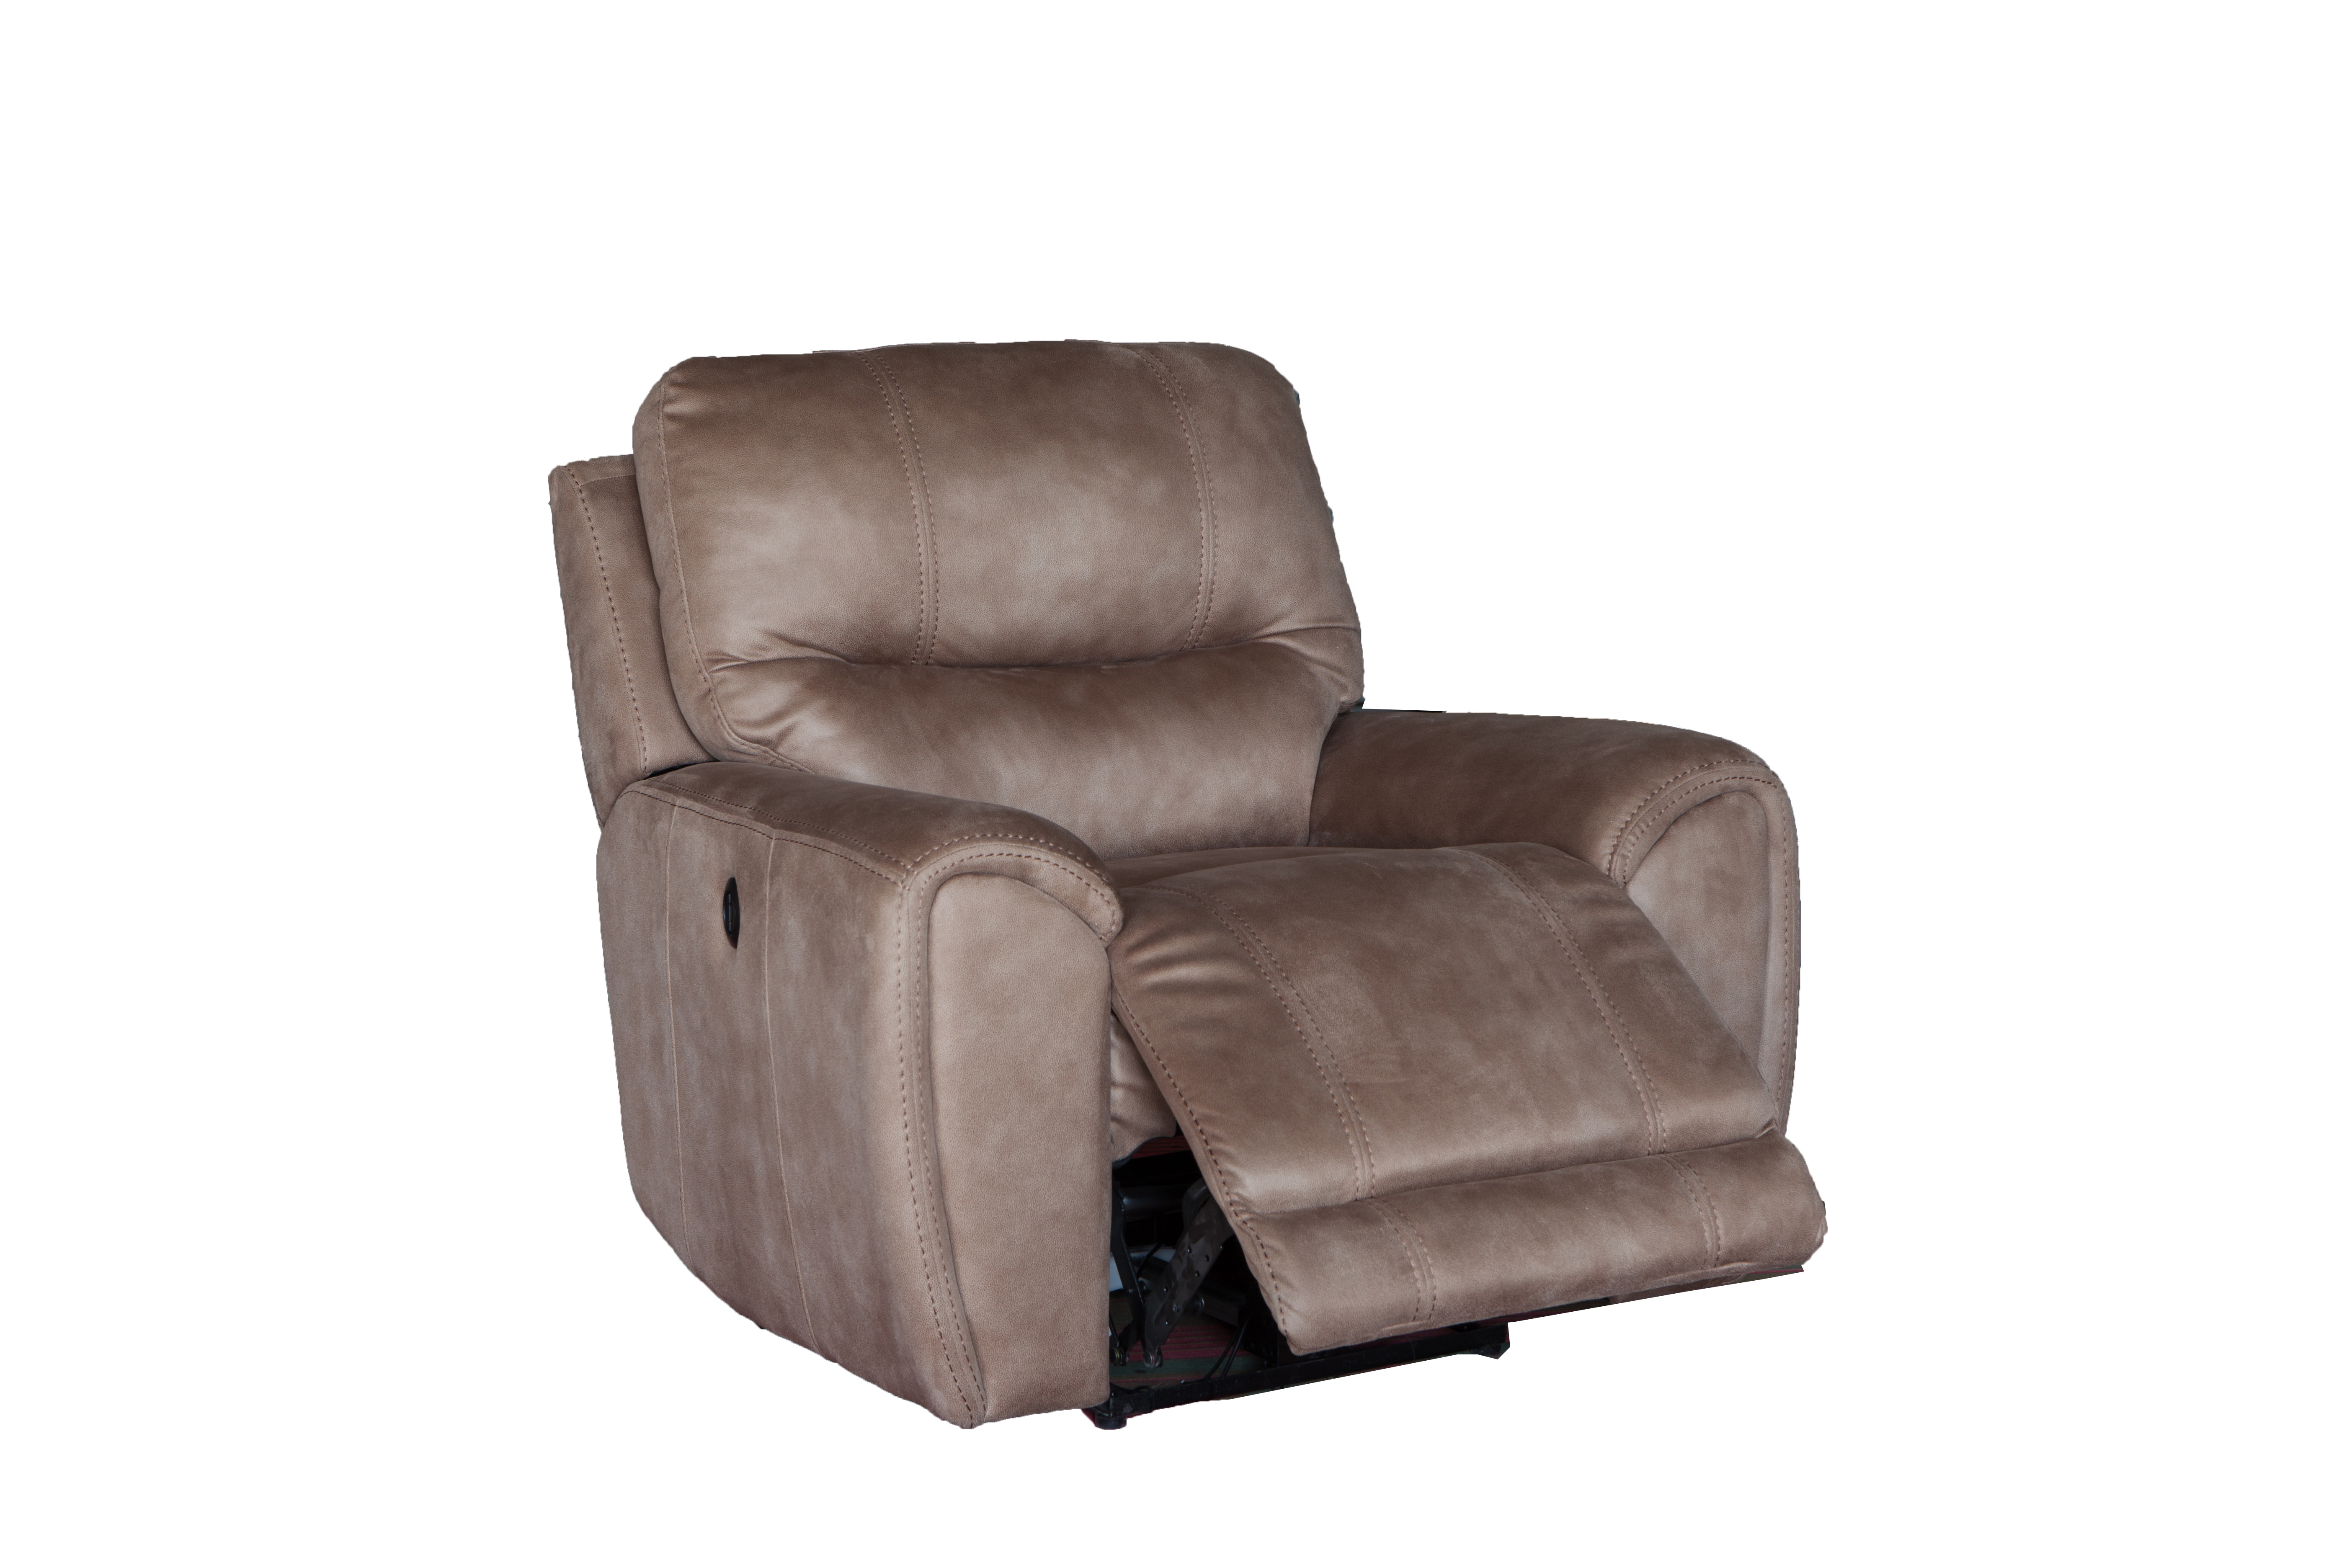 Multi-functional comfortable and soft home lazy boy recliner sofa set